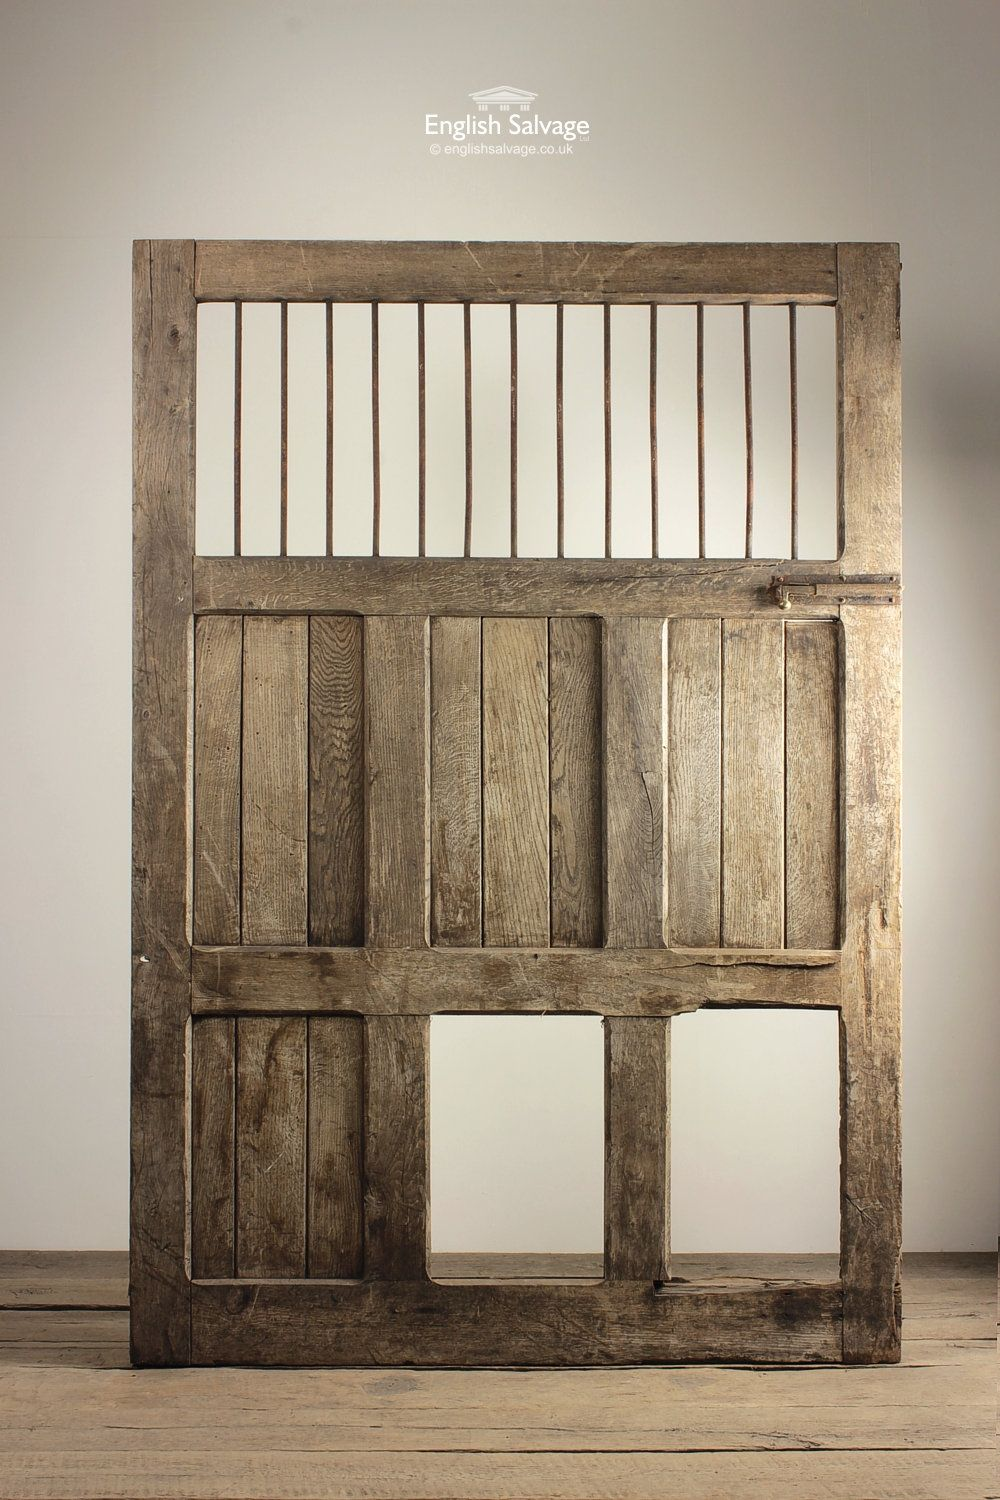 English Salvage (formerly Leominster Reclamation) are the premier architectural salvage and Reclamation Yard in the UK. Providing everything from reclaimed ... & Antique Oak and Metal Bar Top Stable Door | Reclaimed Doors ... pezcame.com